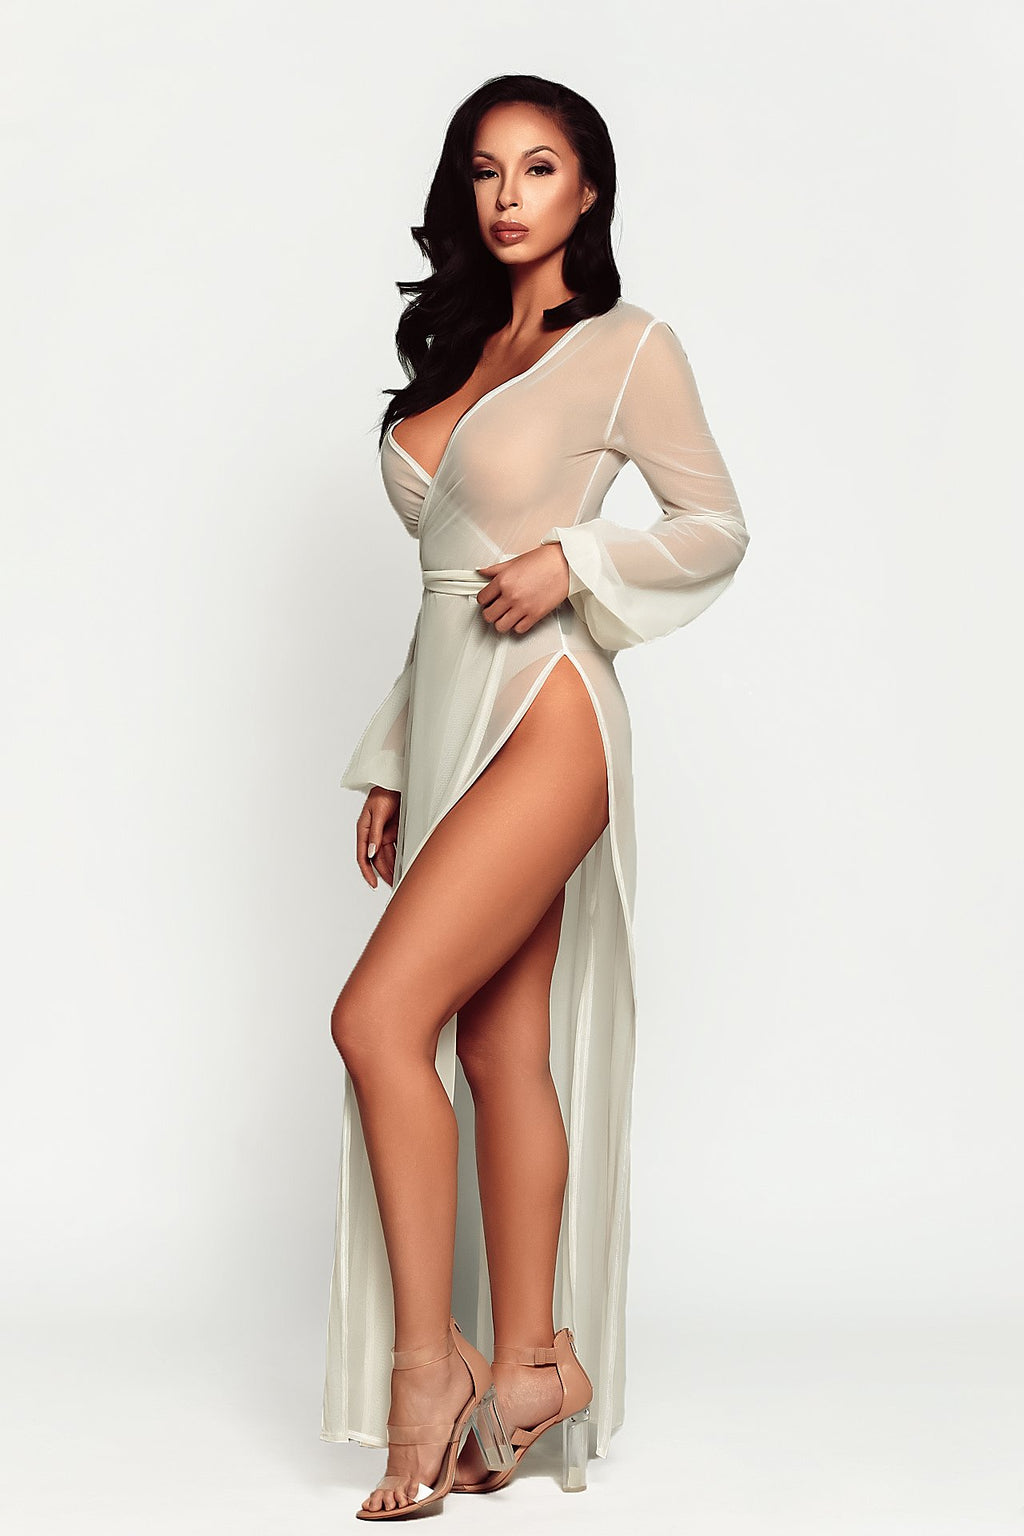 beautiful woman in cream white mesh robe for pool, resort, lingerie